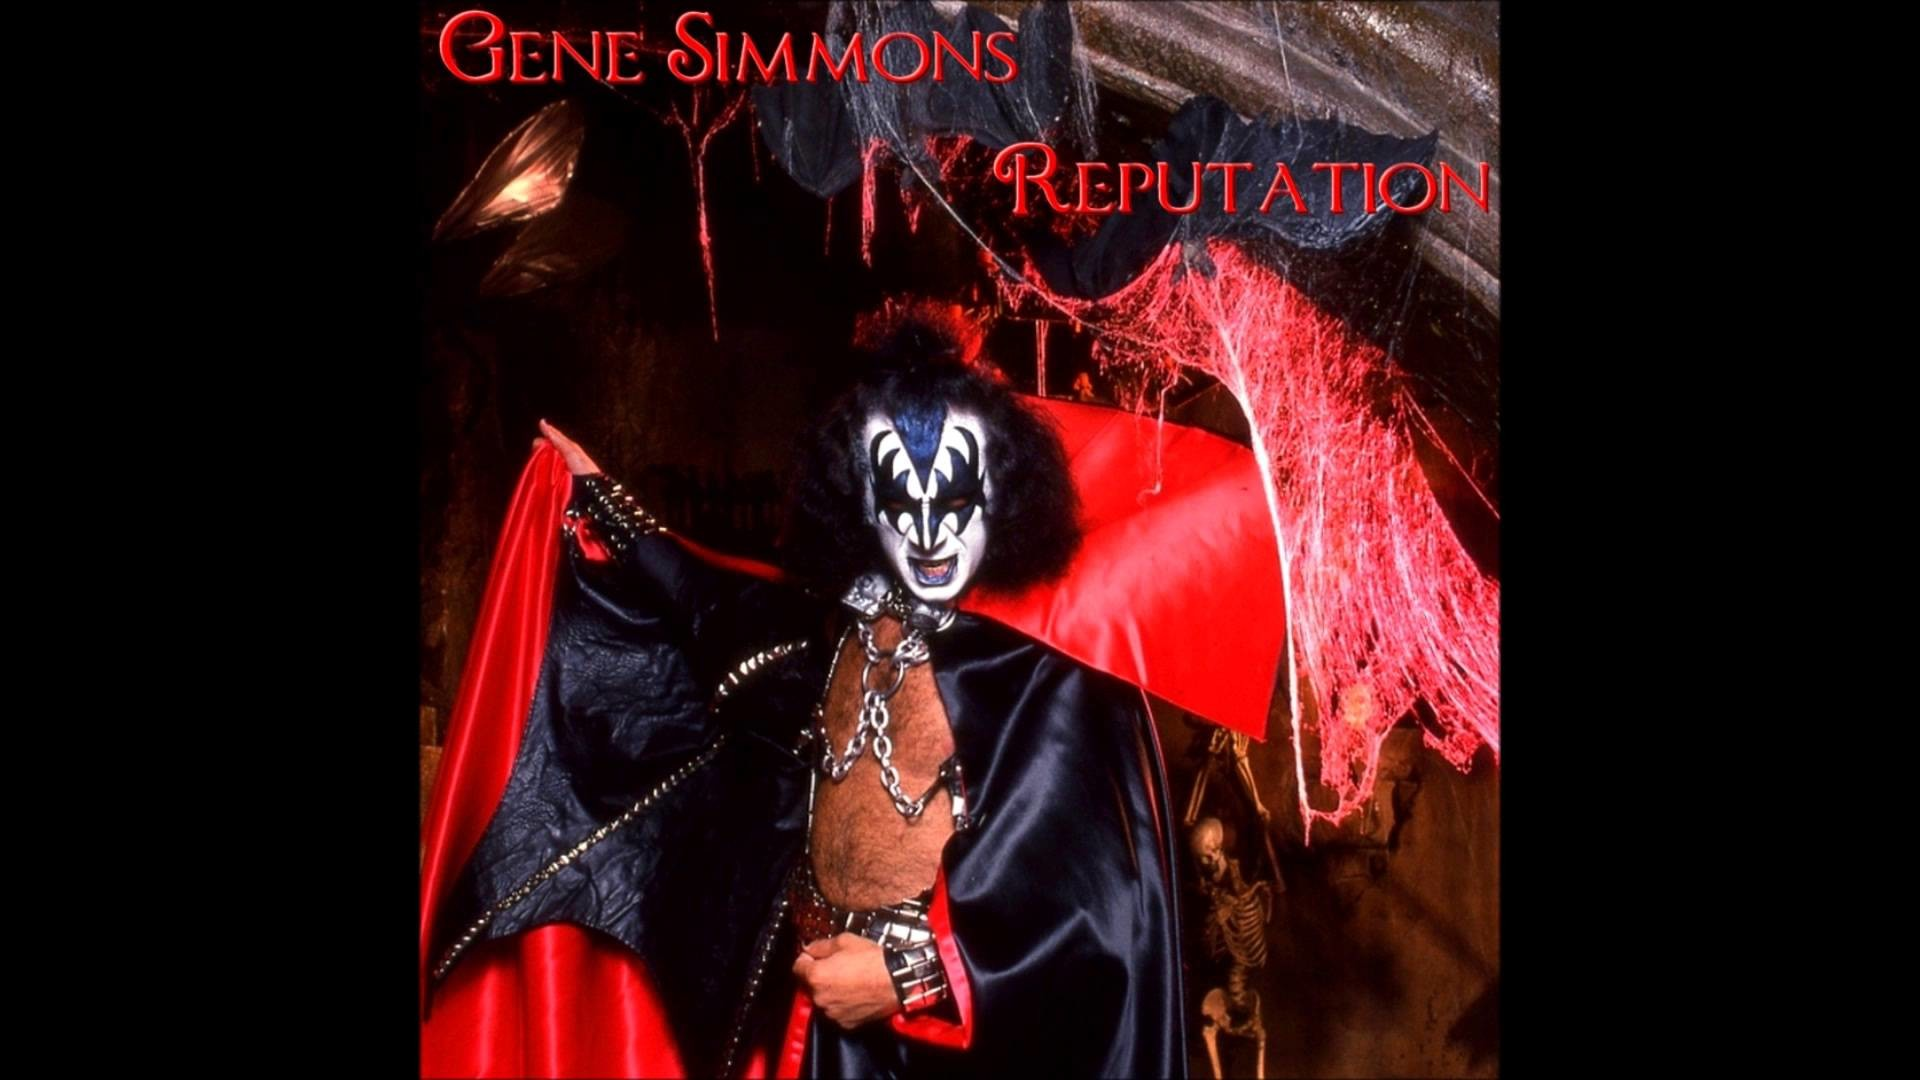 I Love Myself Quotes Wallpapers Gene Simmons Wallpapers 63 Images